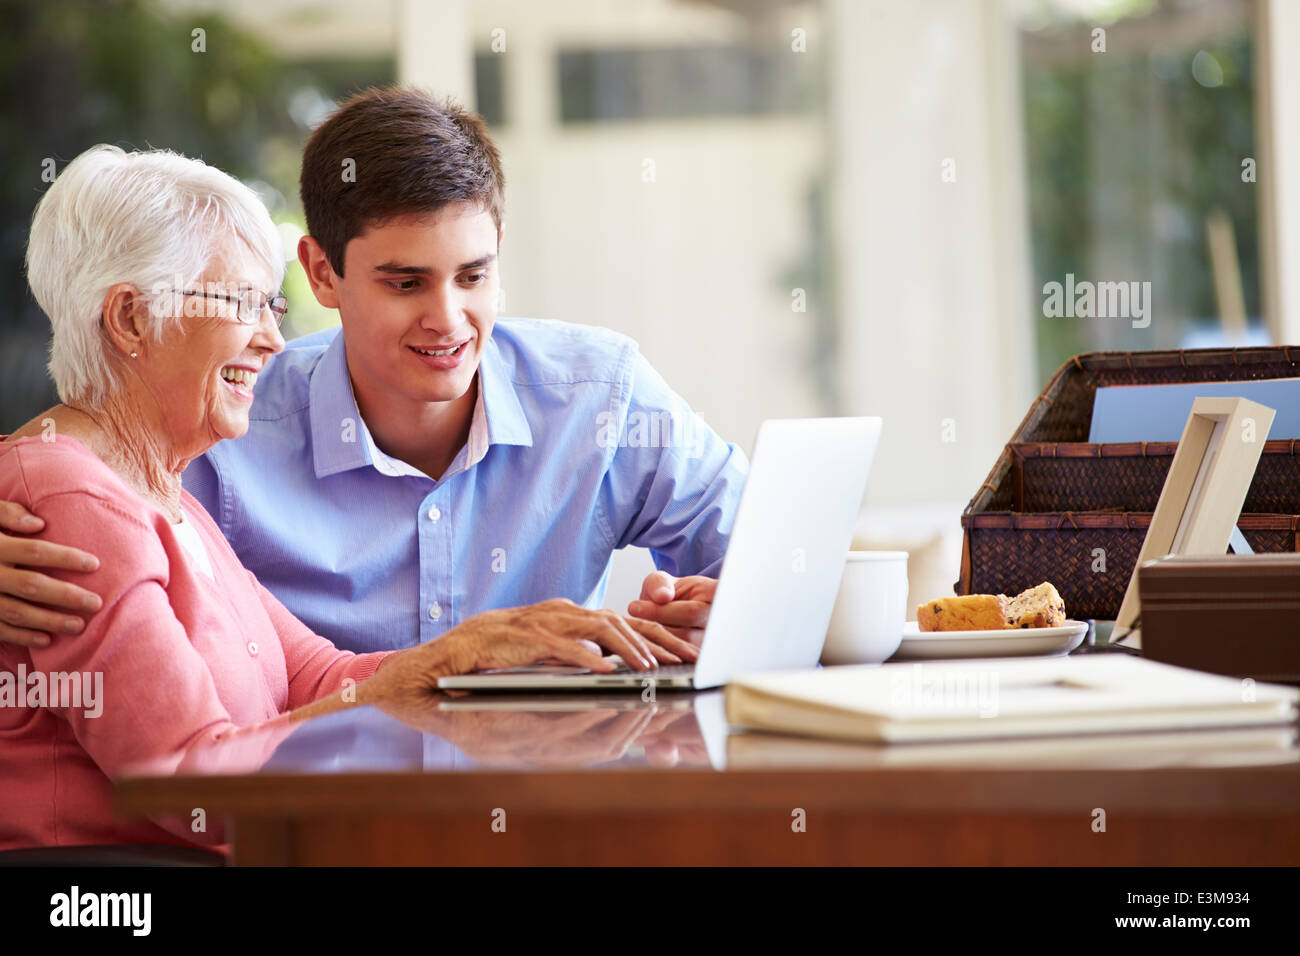 Teenage Grandson Helping Grandmother With Laptop - Stock Image